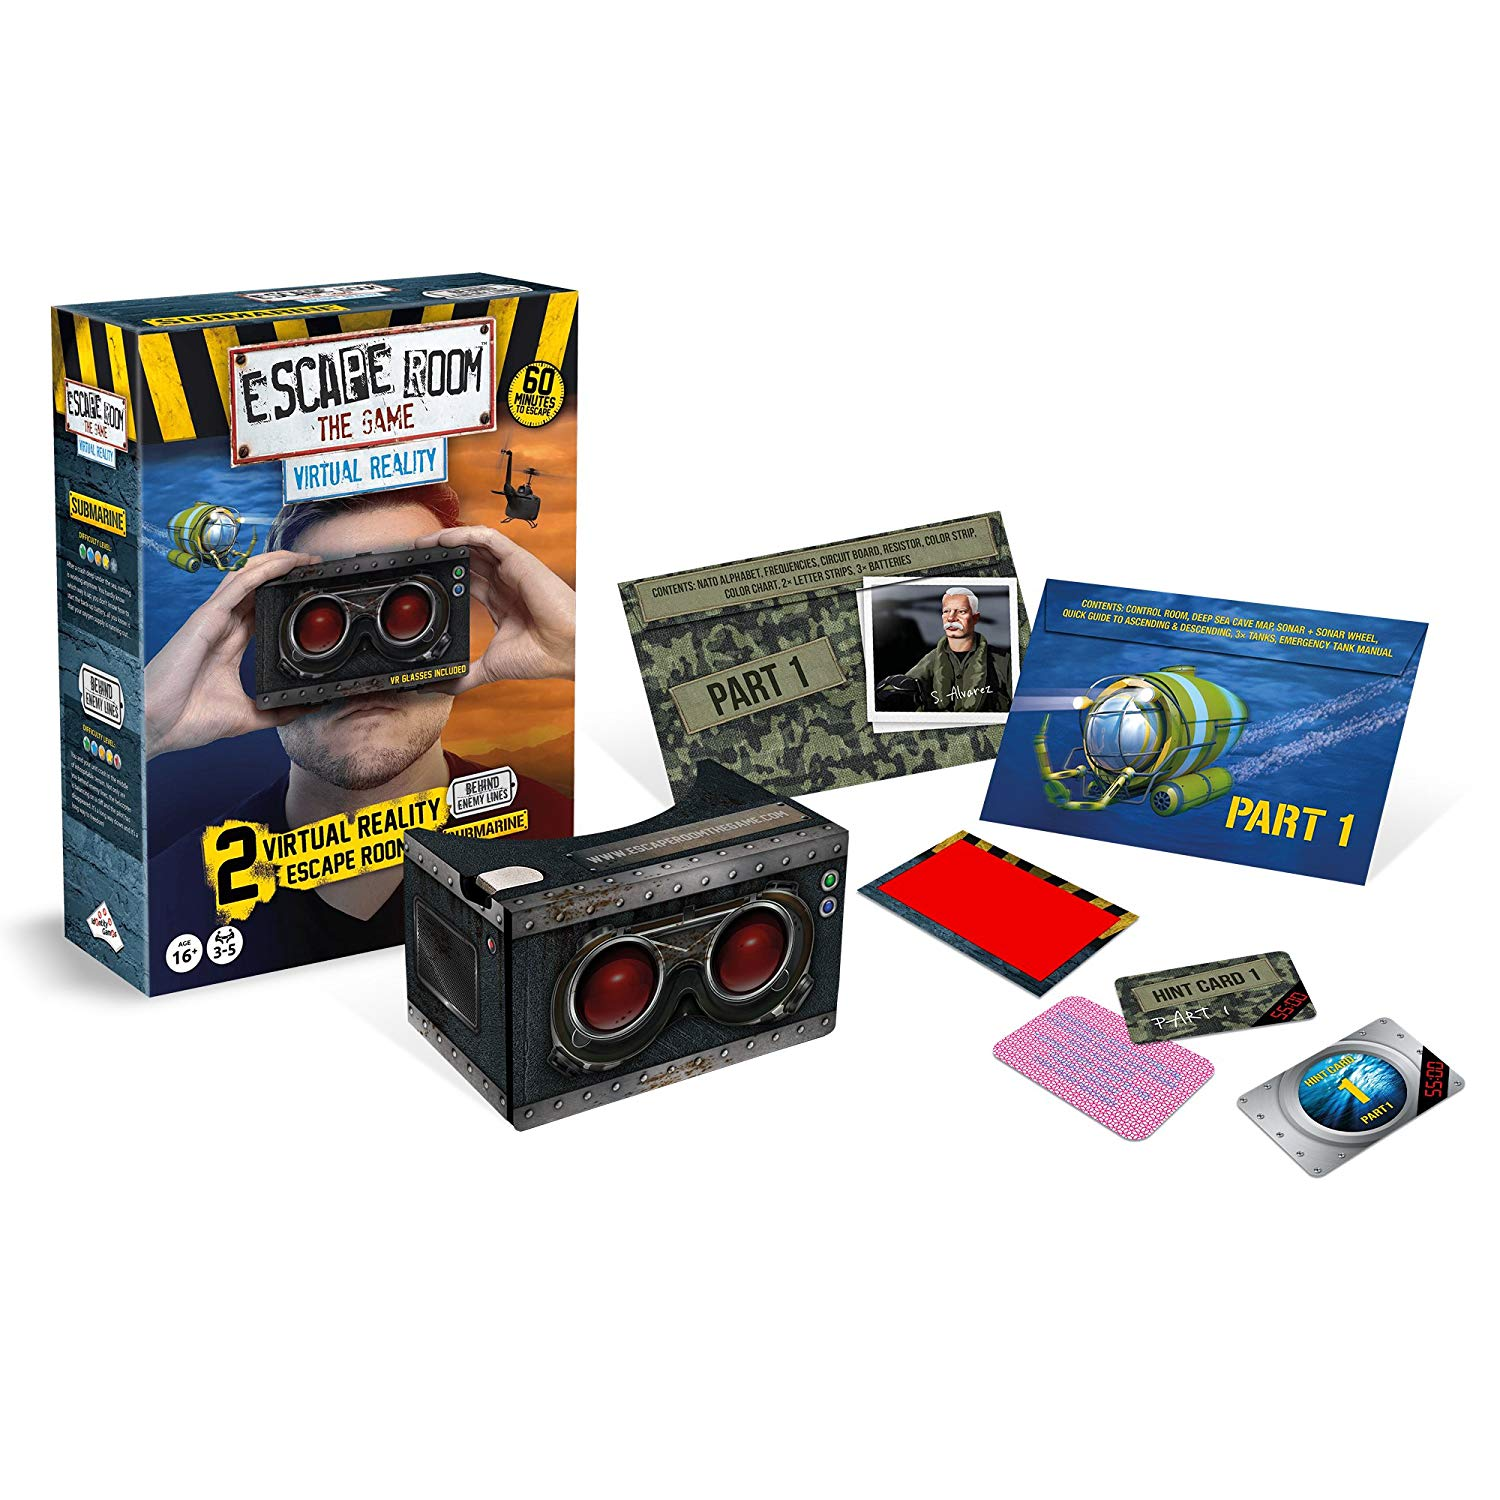 Identity Games Escape Room The Game: Virtual Reality Expansion Pack